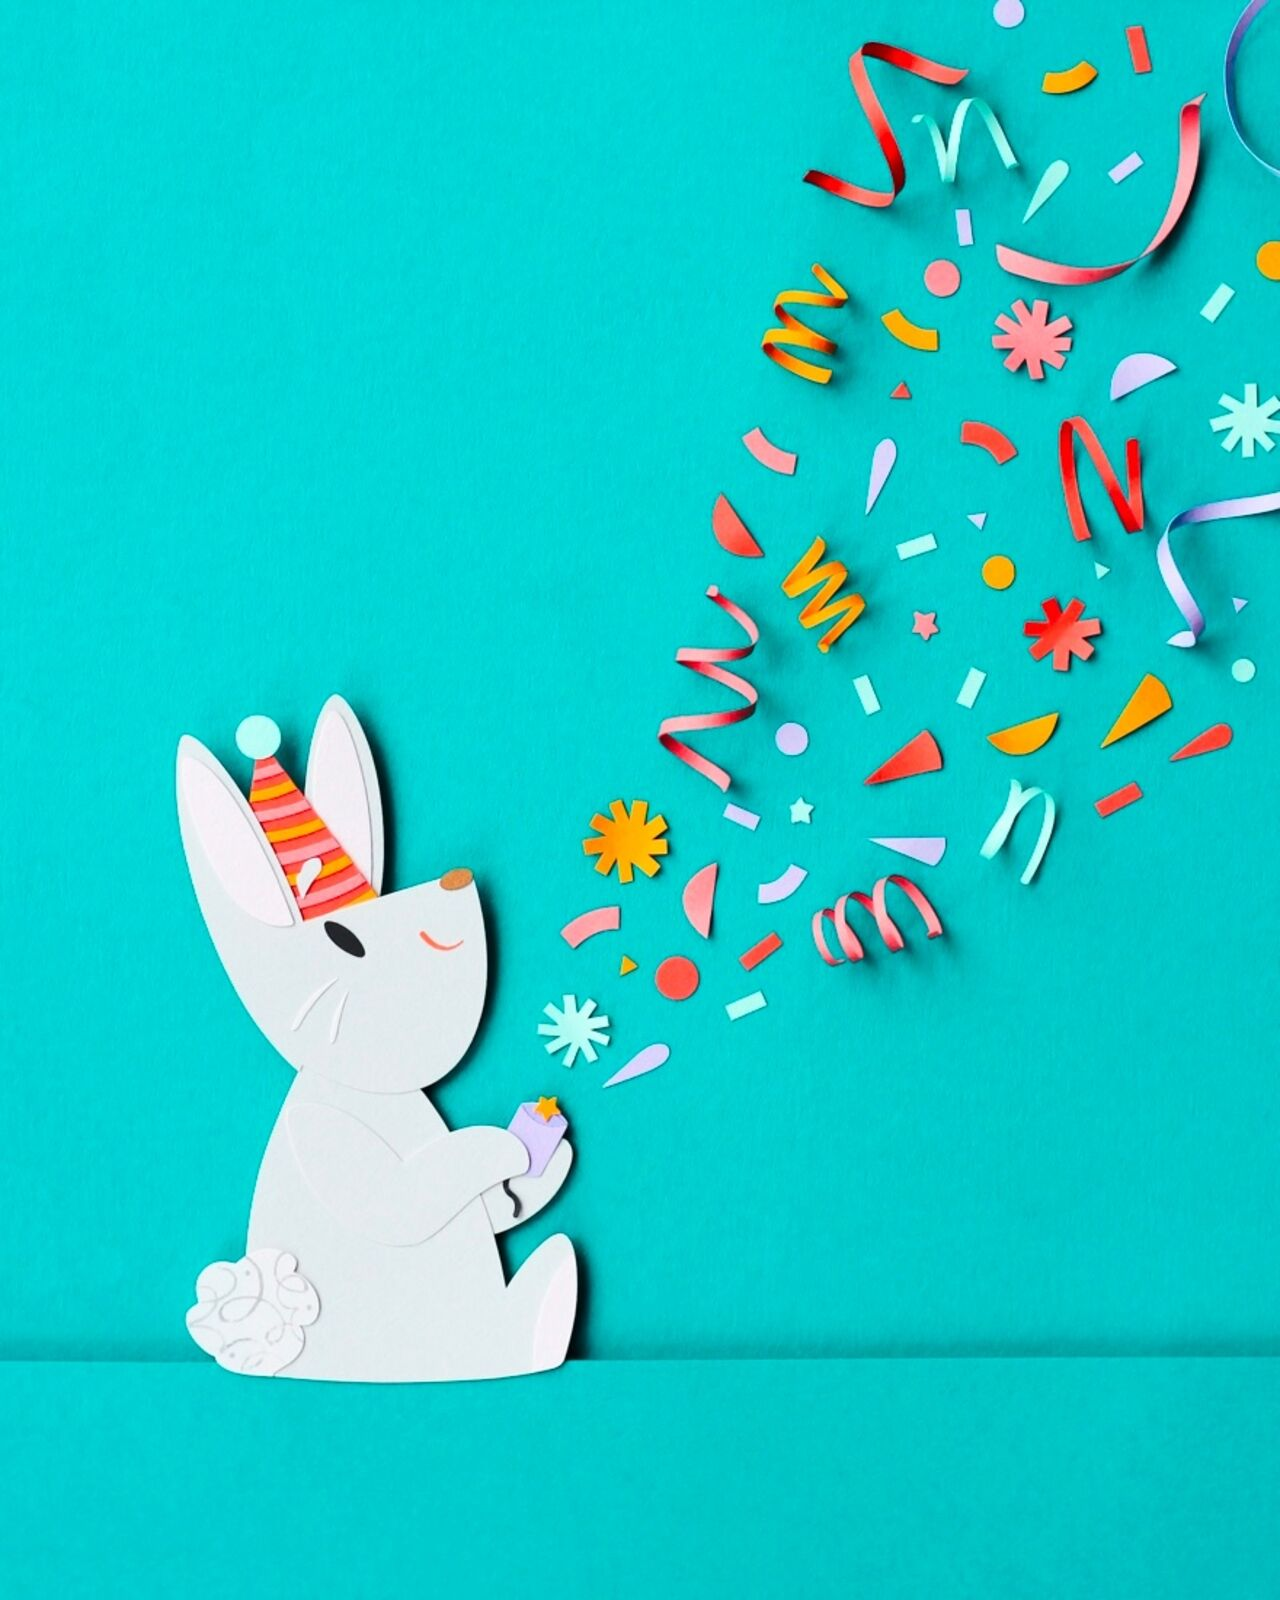 Photo of a wee white rabbit shooting a fun party popper, entirely made of paper cuttings.